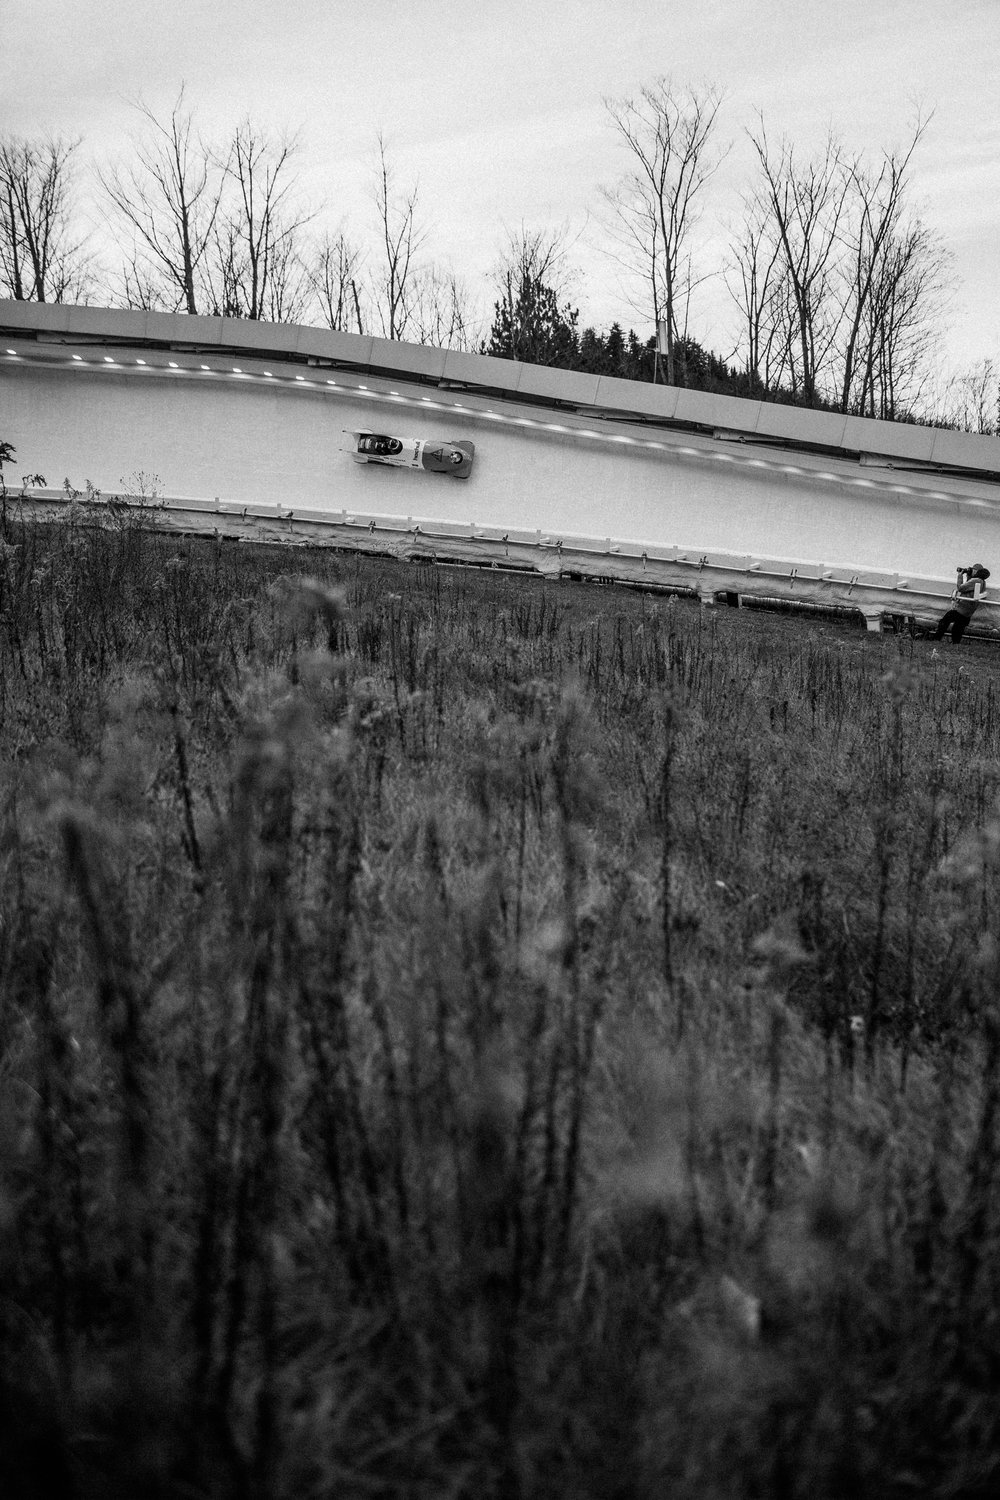 The Lake Placid, New York track is known among athletes as one of the more technically challenging courses in the World Cup circuit. Olympic veterans and hopefuls in bobsled and skeleton gathered in Lake Placid, New York leading up to the World Cup Bobsled and Skeleton races held November 9-10, 2017. Results from Lake Placid, one stop along the circuit, will help determine teams for the 2018 Winter Olympics in Pyeongchang, South Korea.